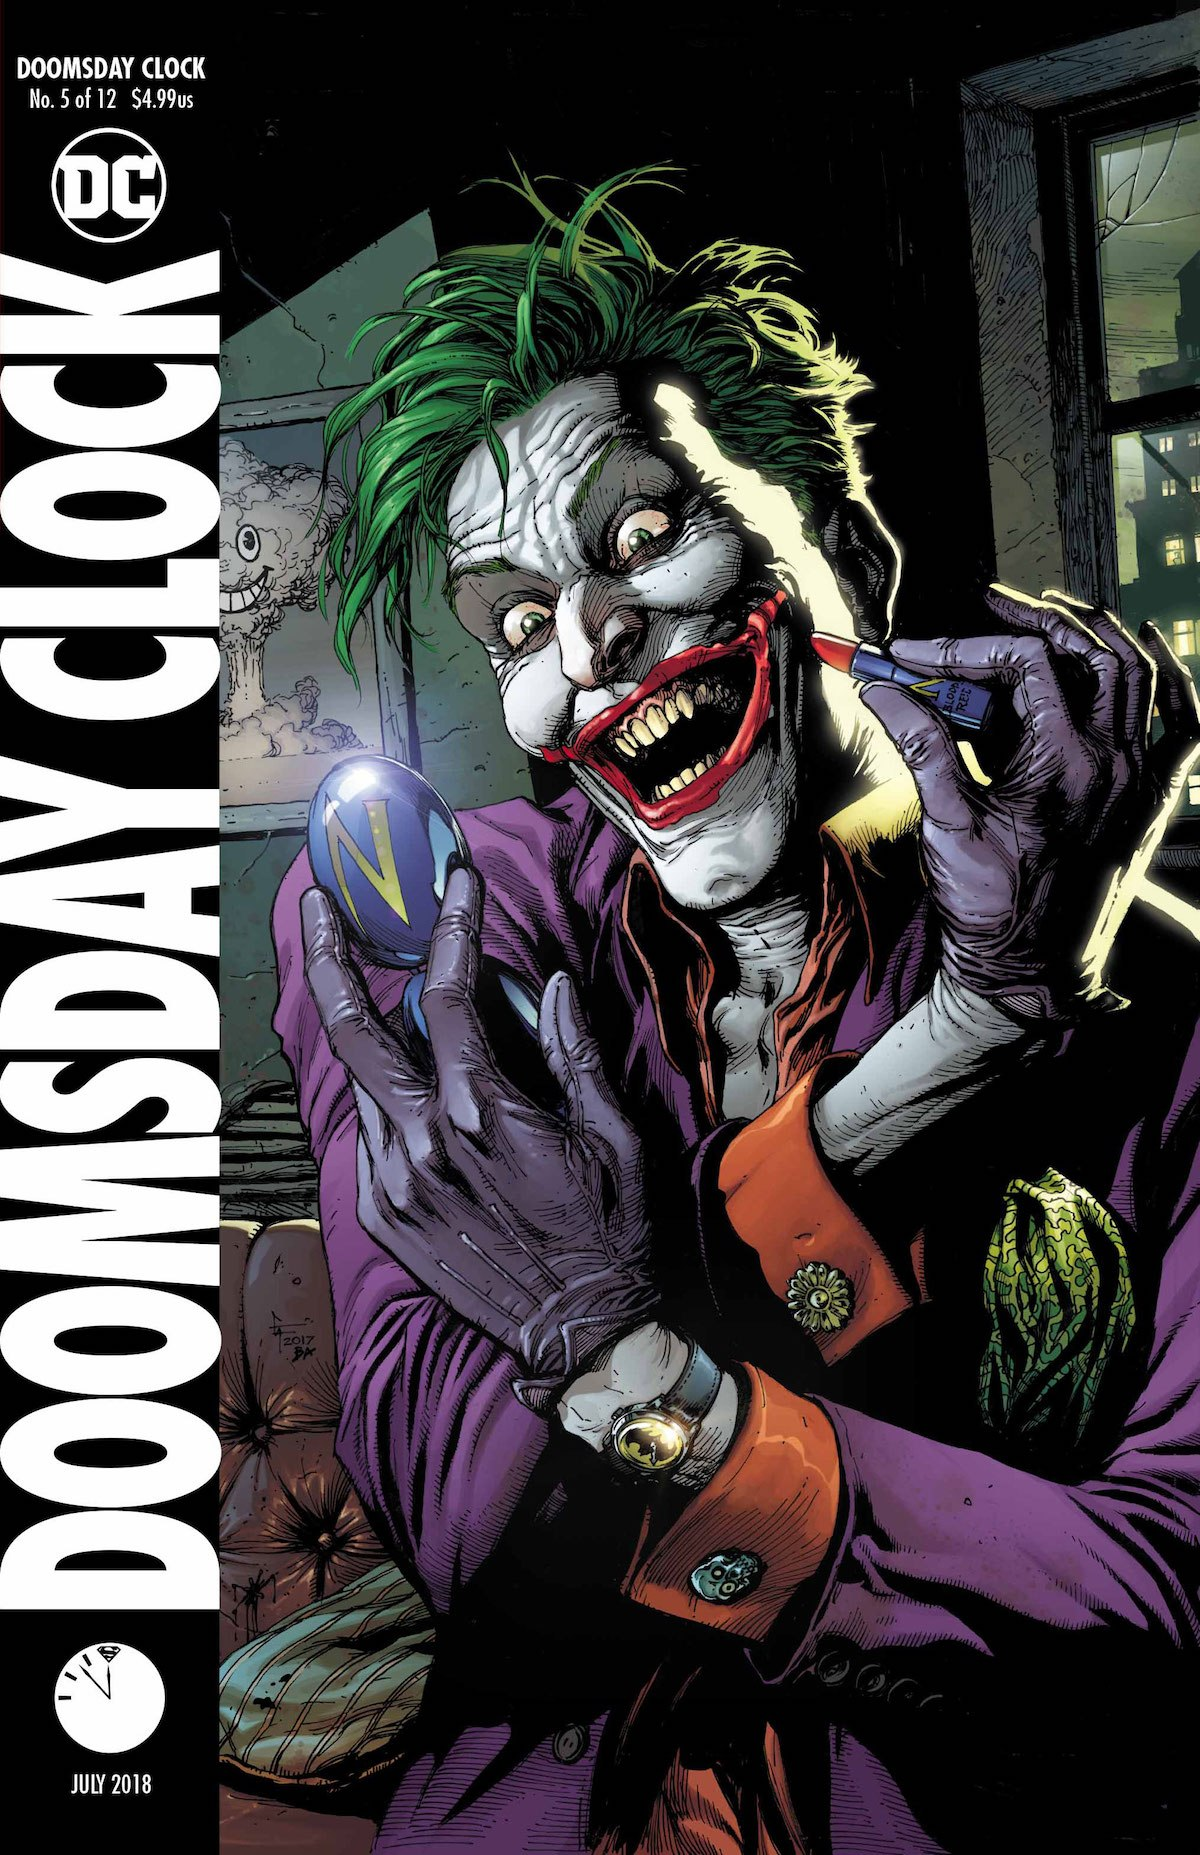 Doomsday Clock #5 variant cover